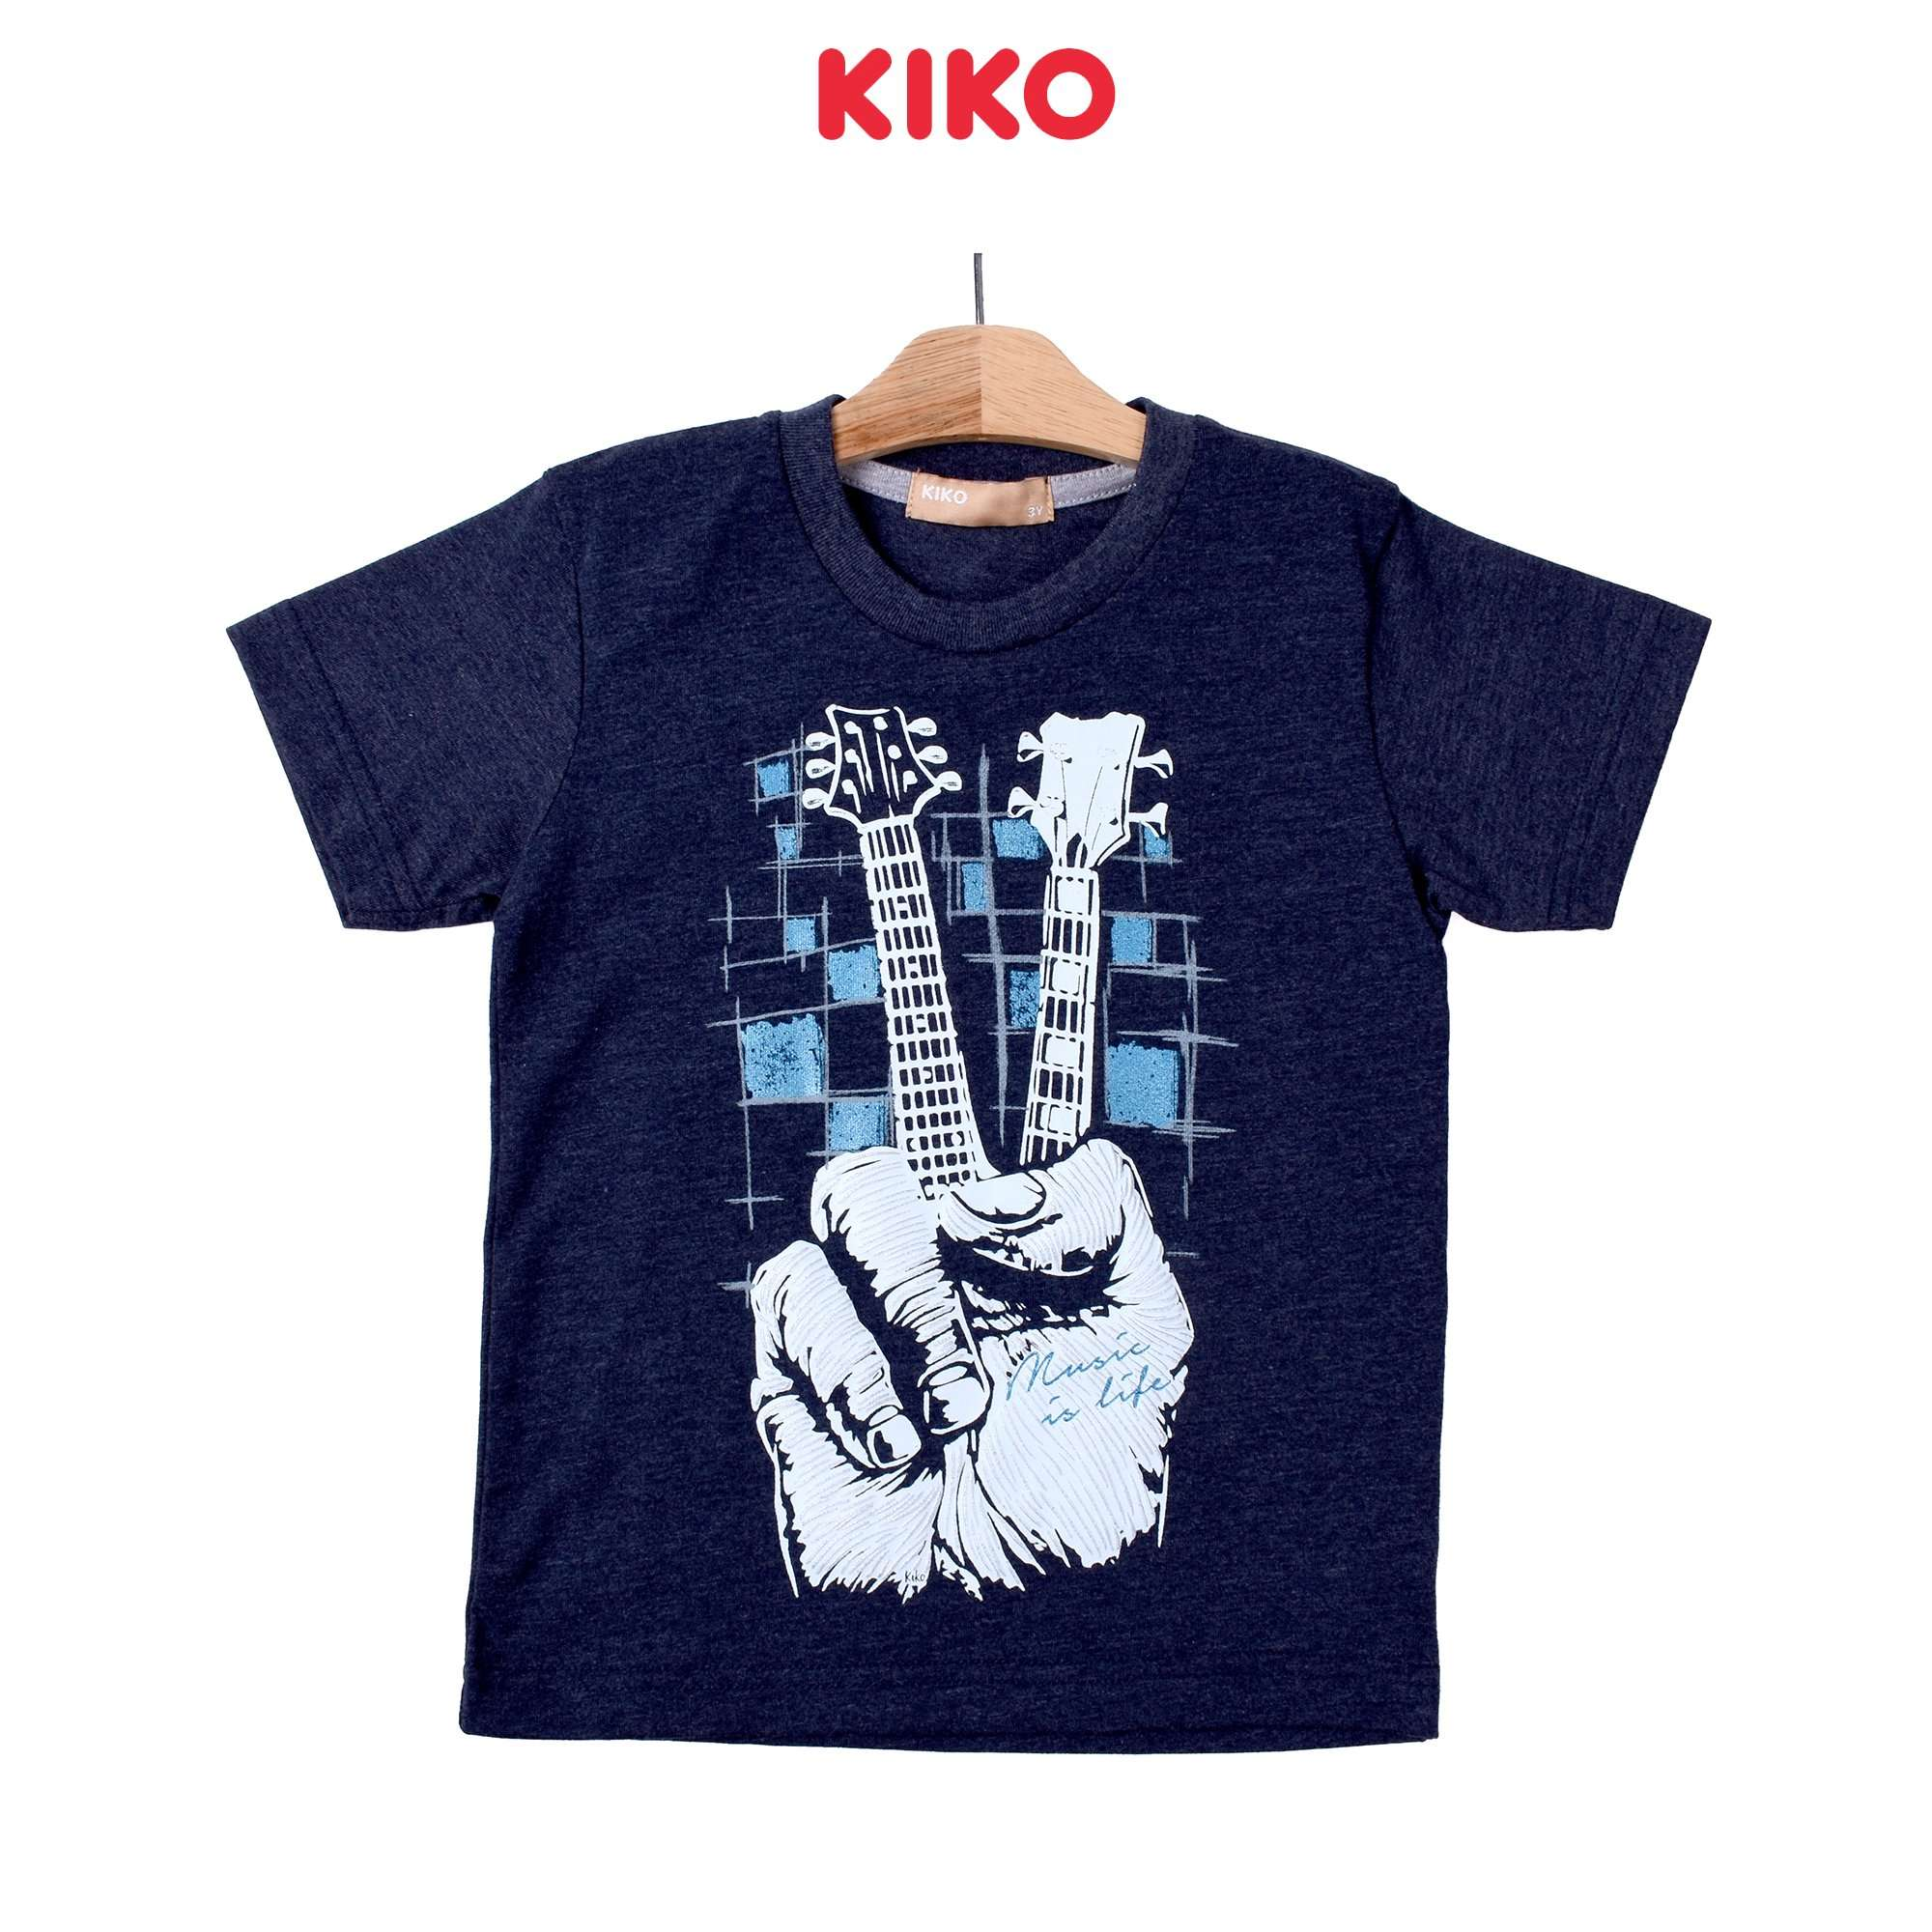 KIKO Boy Short Sleeve Tee - Navy 130108-111 : Buy KIKO online at CMG.MY